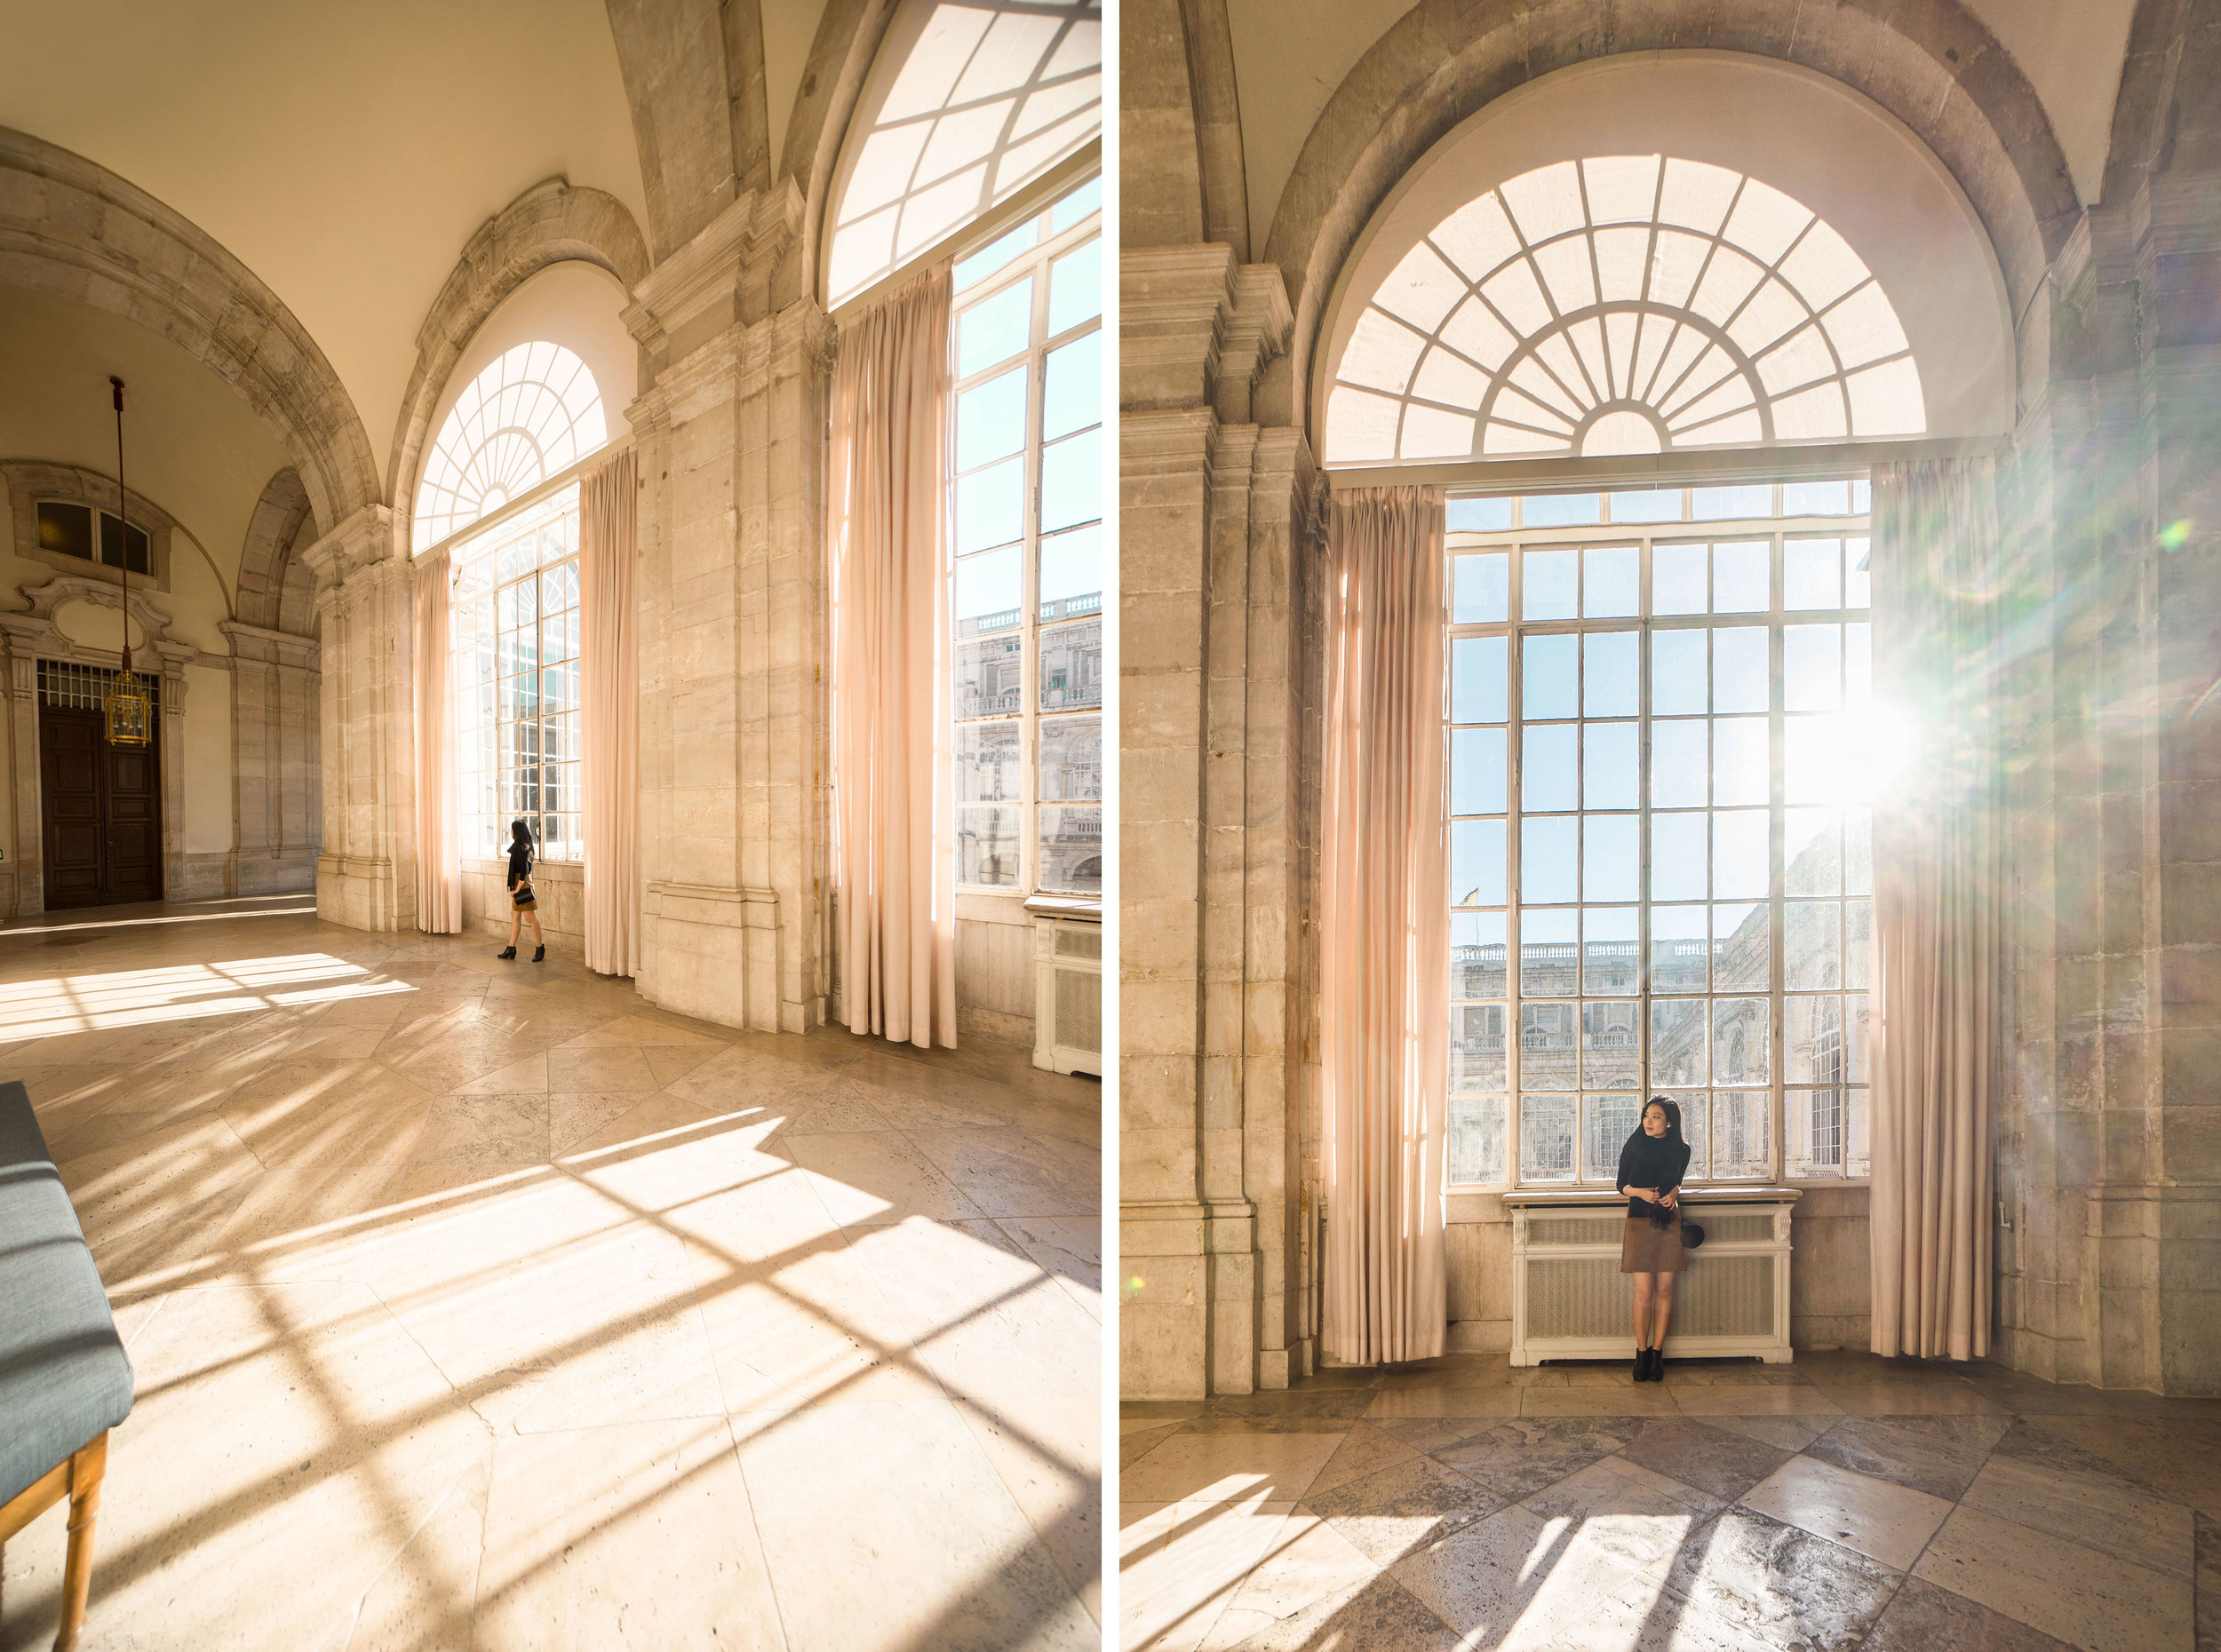 Wander from one ornate room to another at  Palacio Real de Madrid